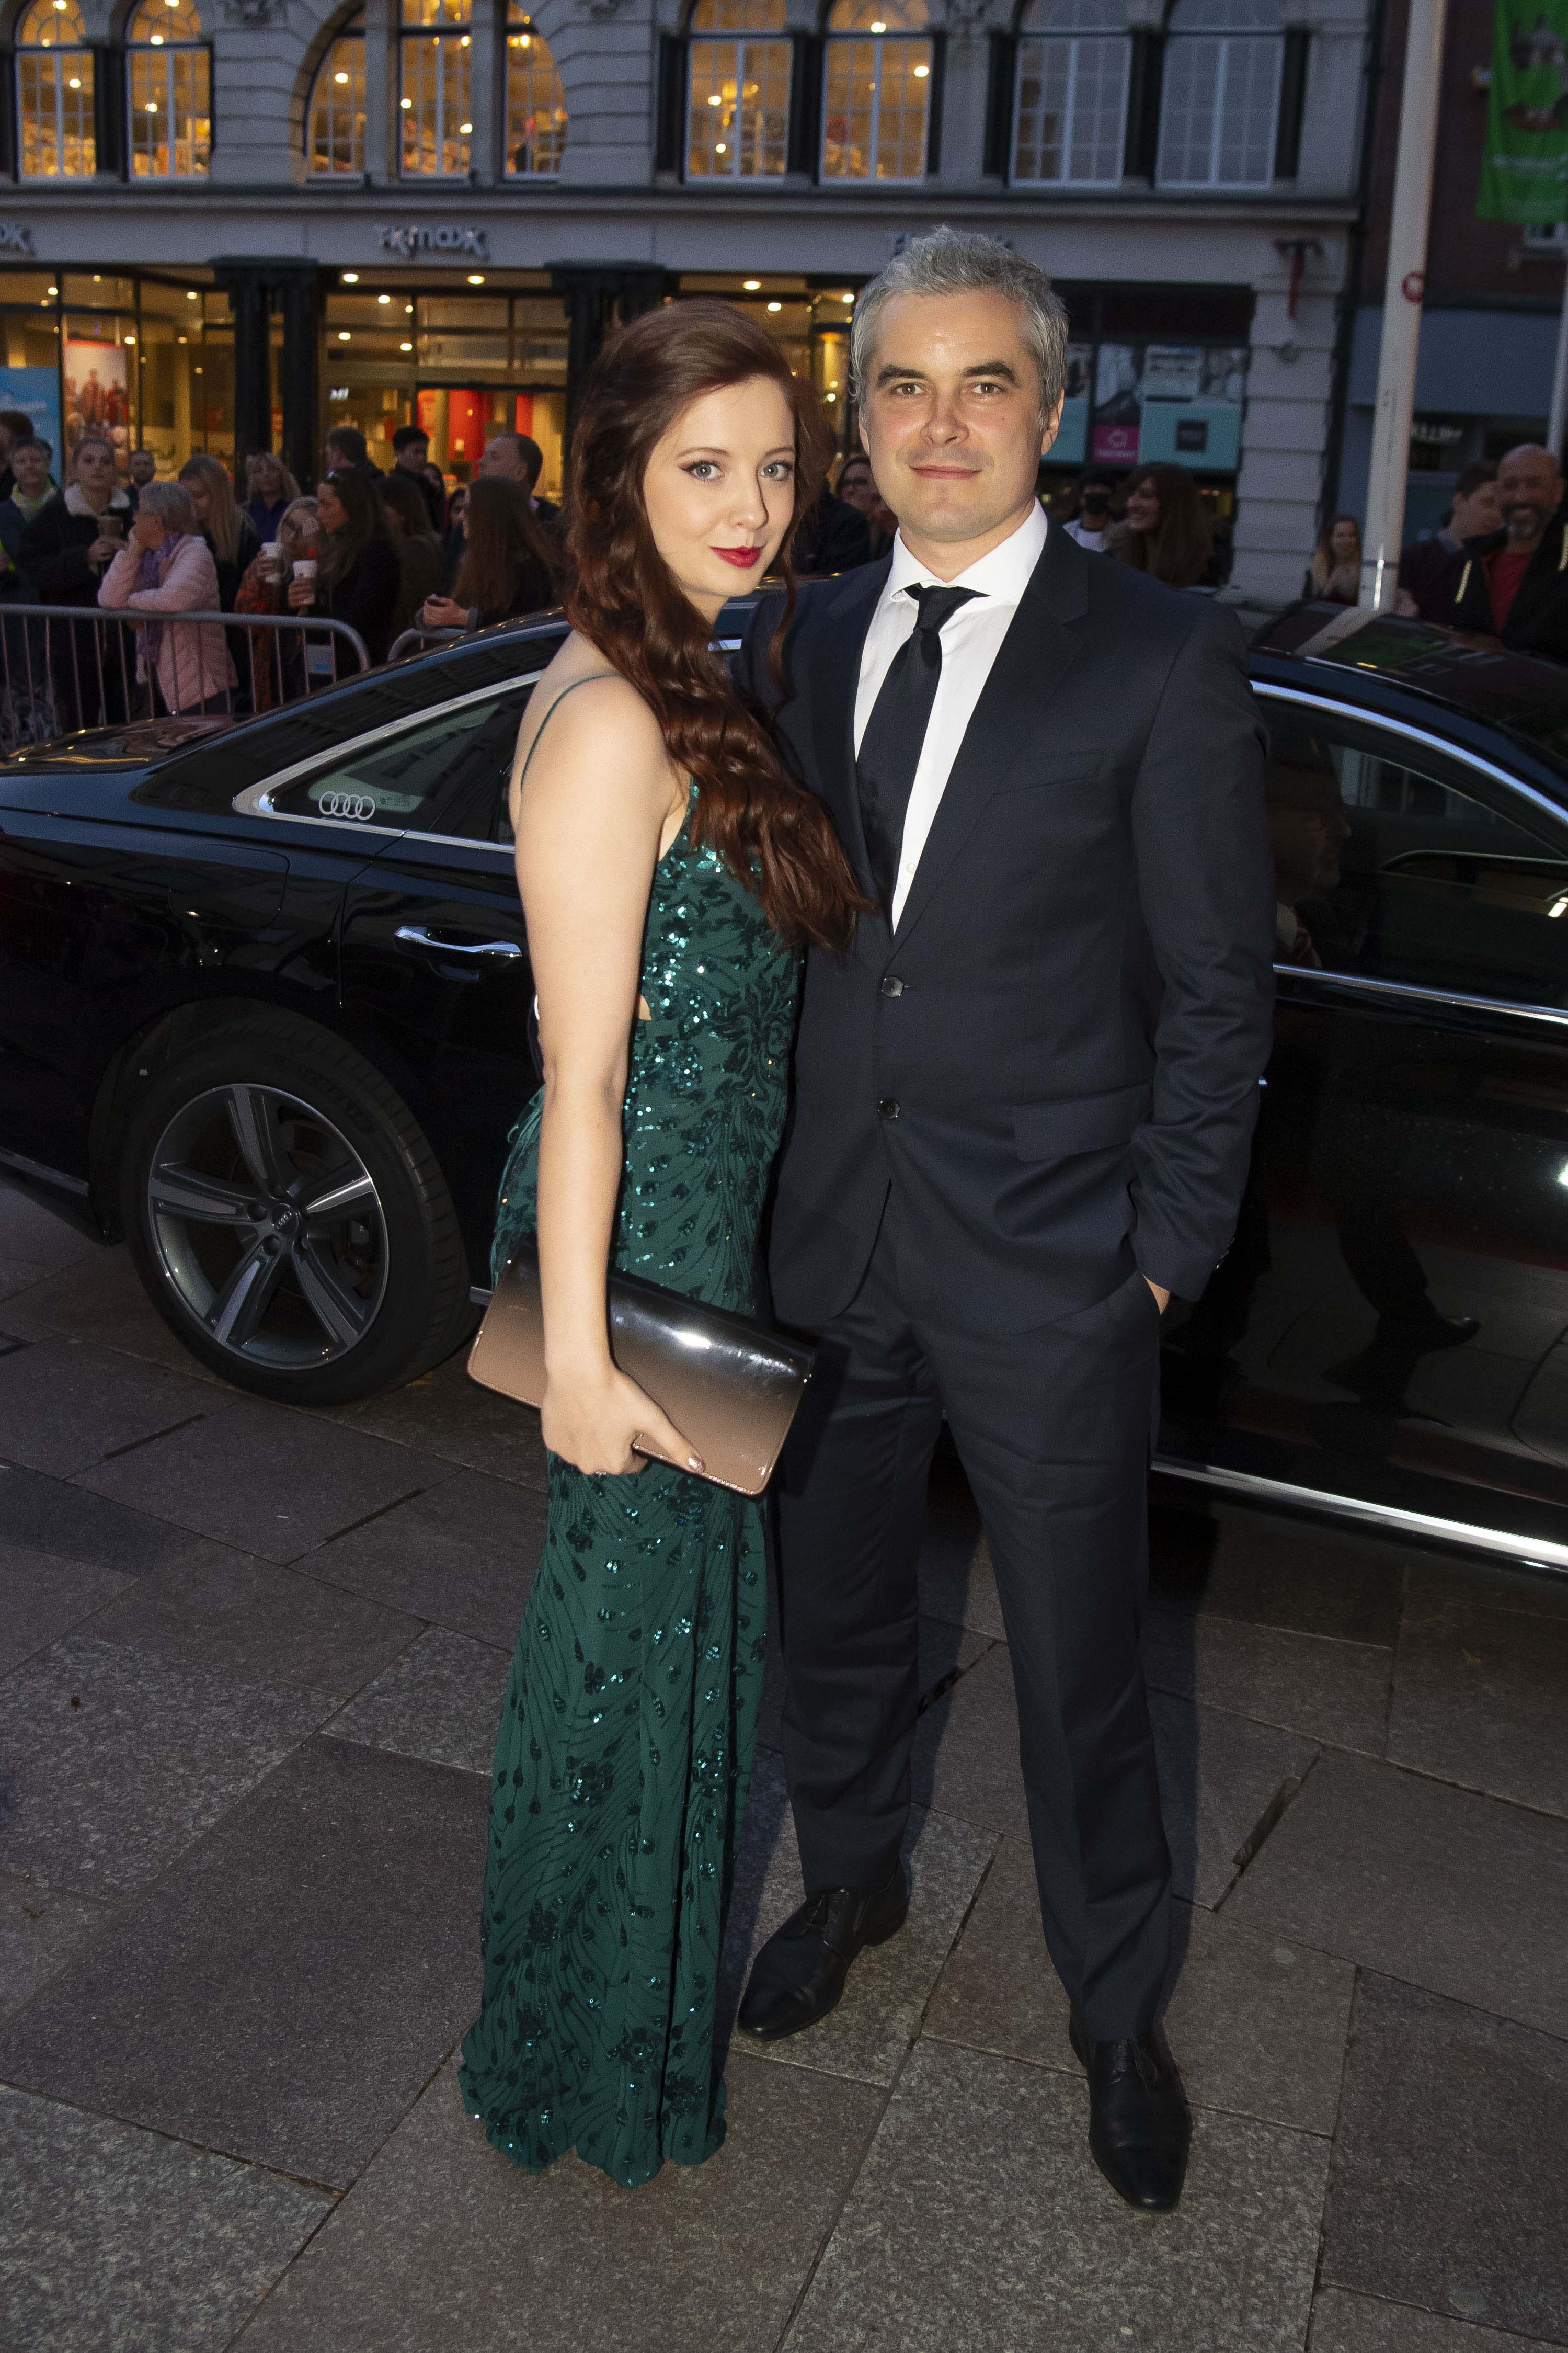 Trystan-Gavelle-Guest-arrive-in-an-Audi-at-the-British-Academy-Cymru-Awards-2019-Cardiff-Sunday-13-October-2019